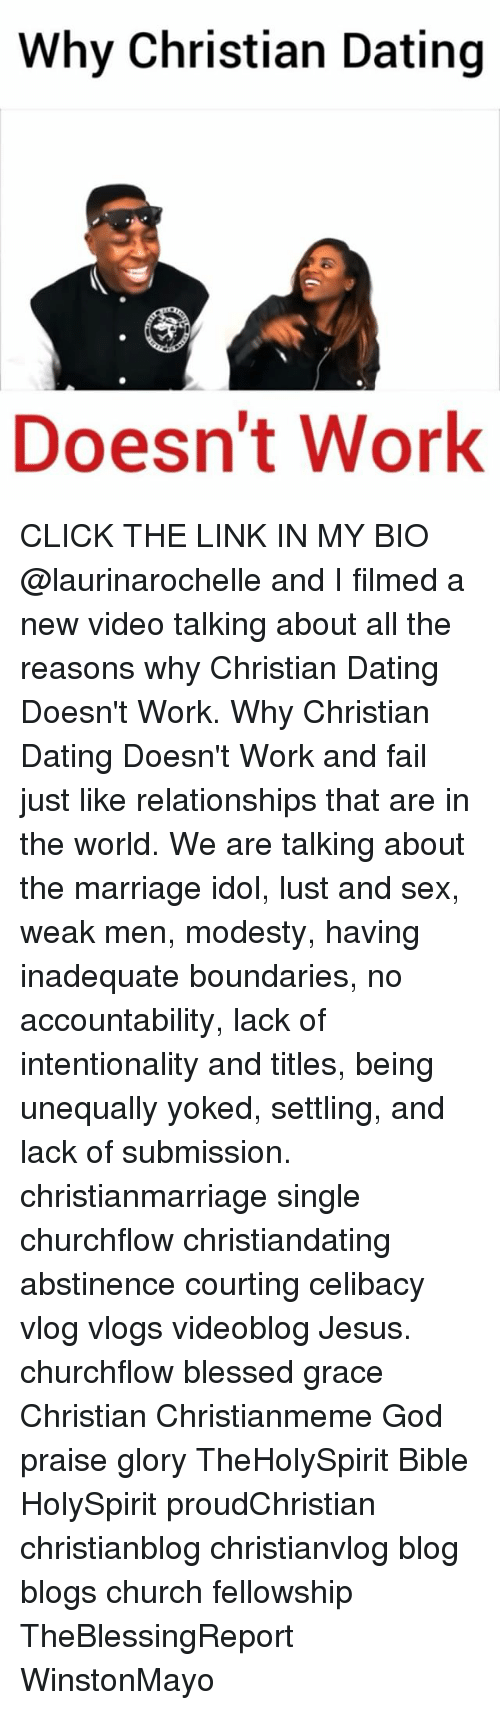 Christian dating and boundaries